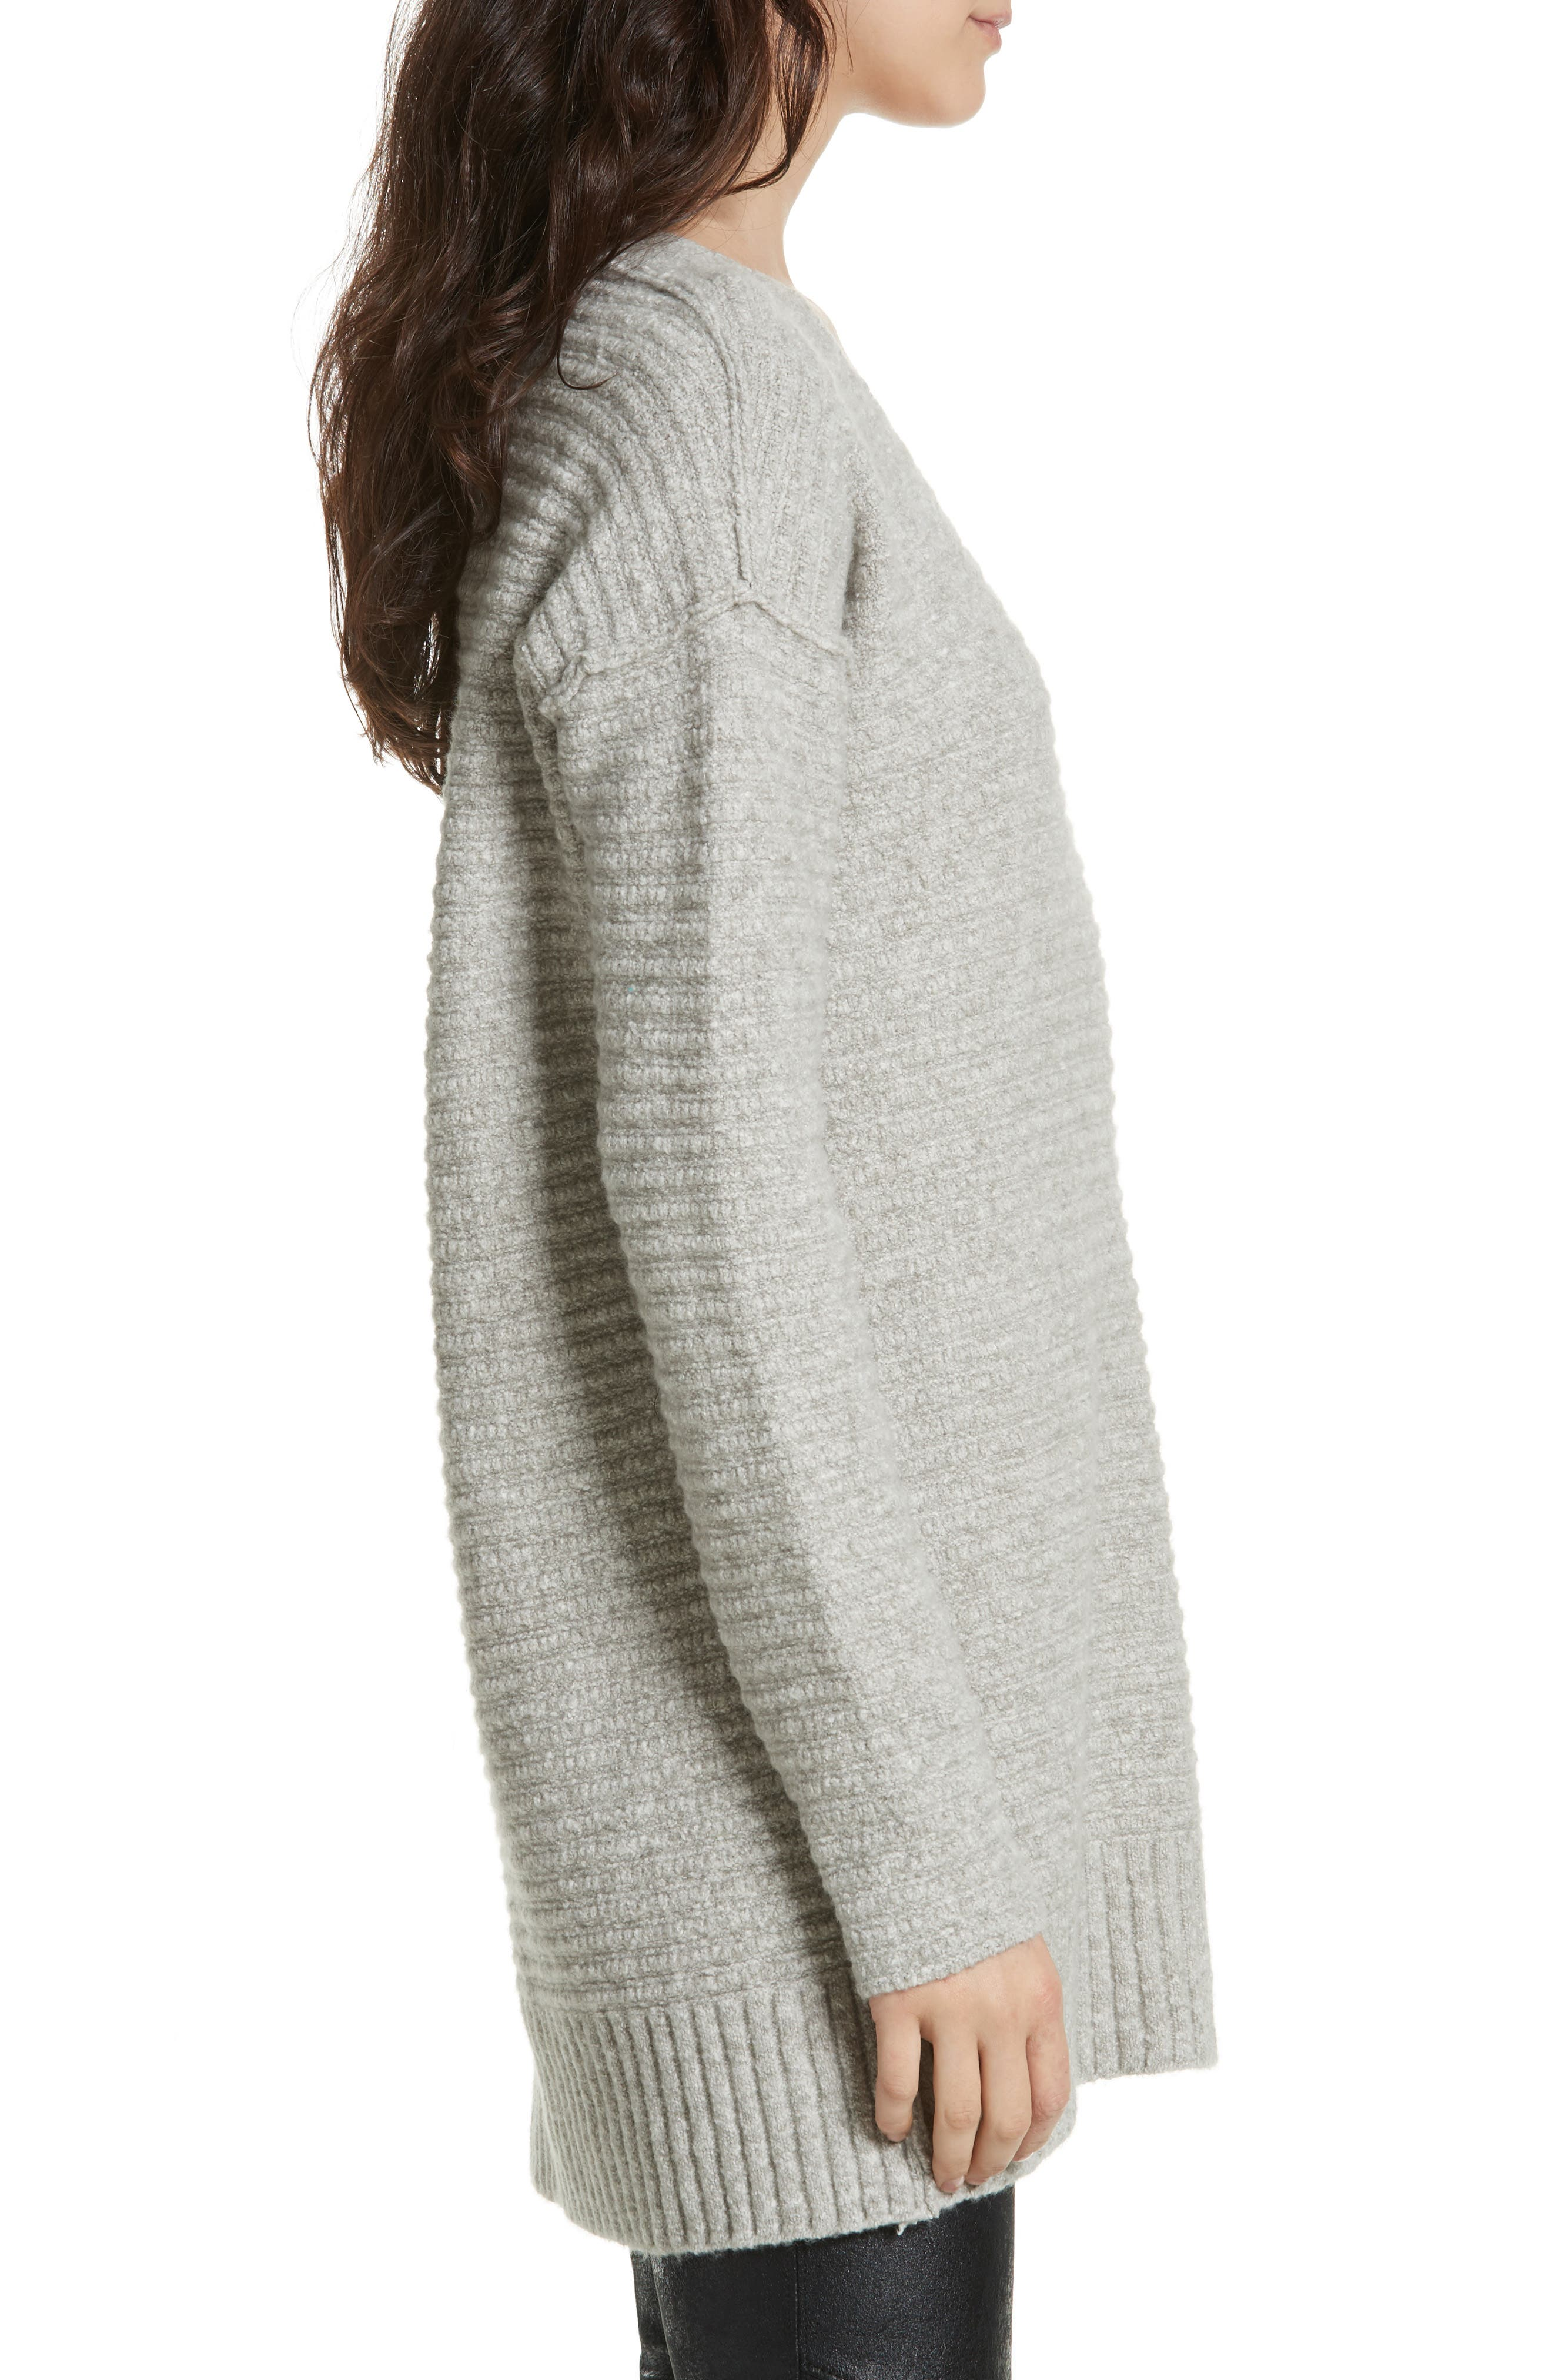 Heart It Laces Sweater,                             Alternate thumbnail 3, color,                             Grey